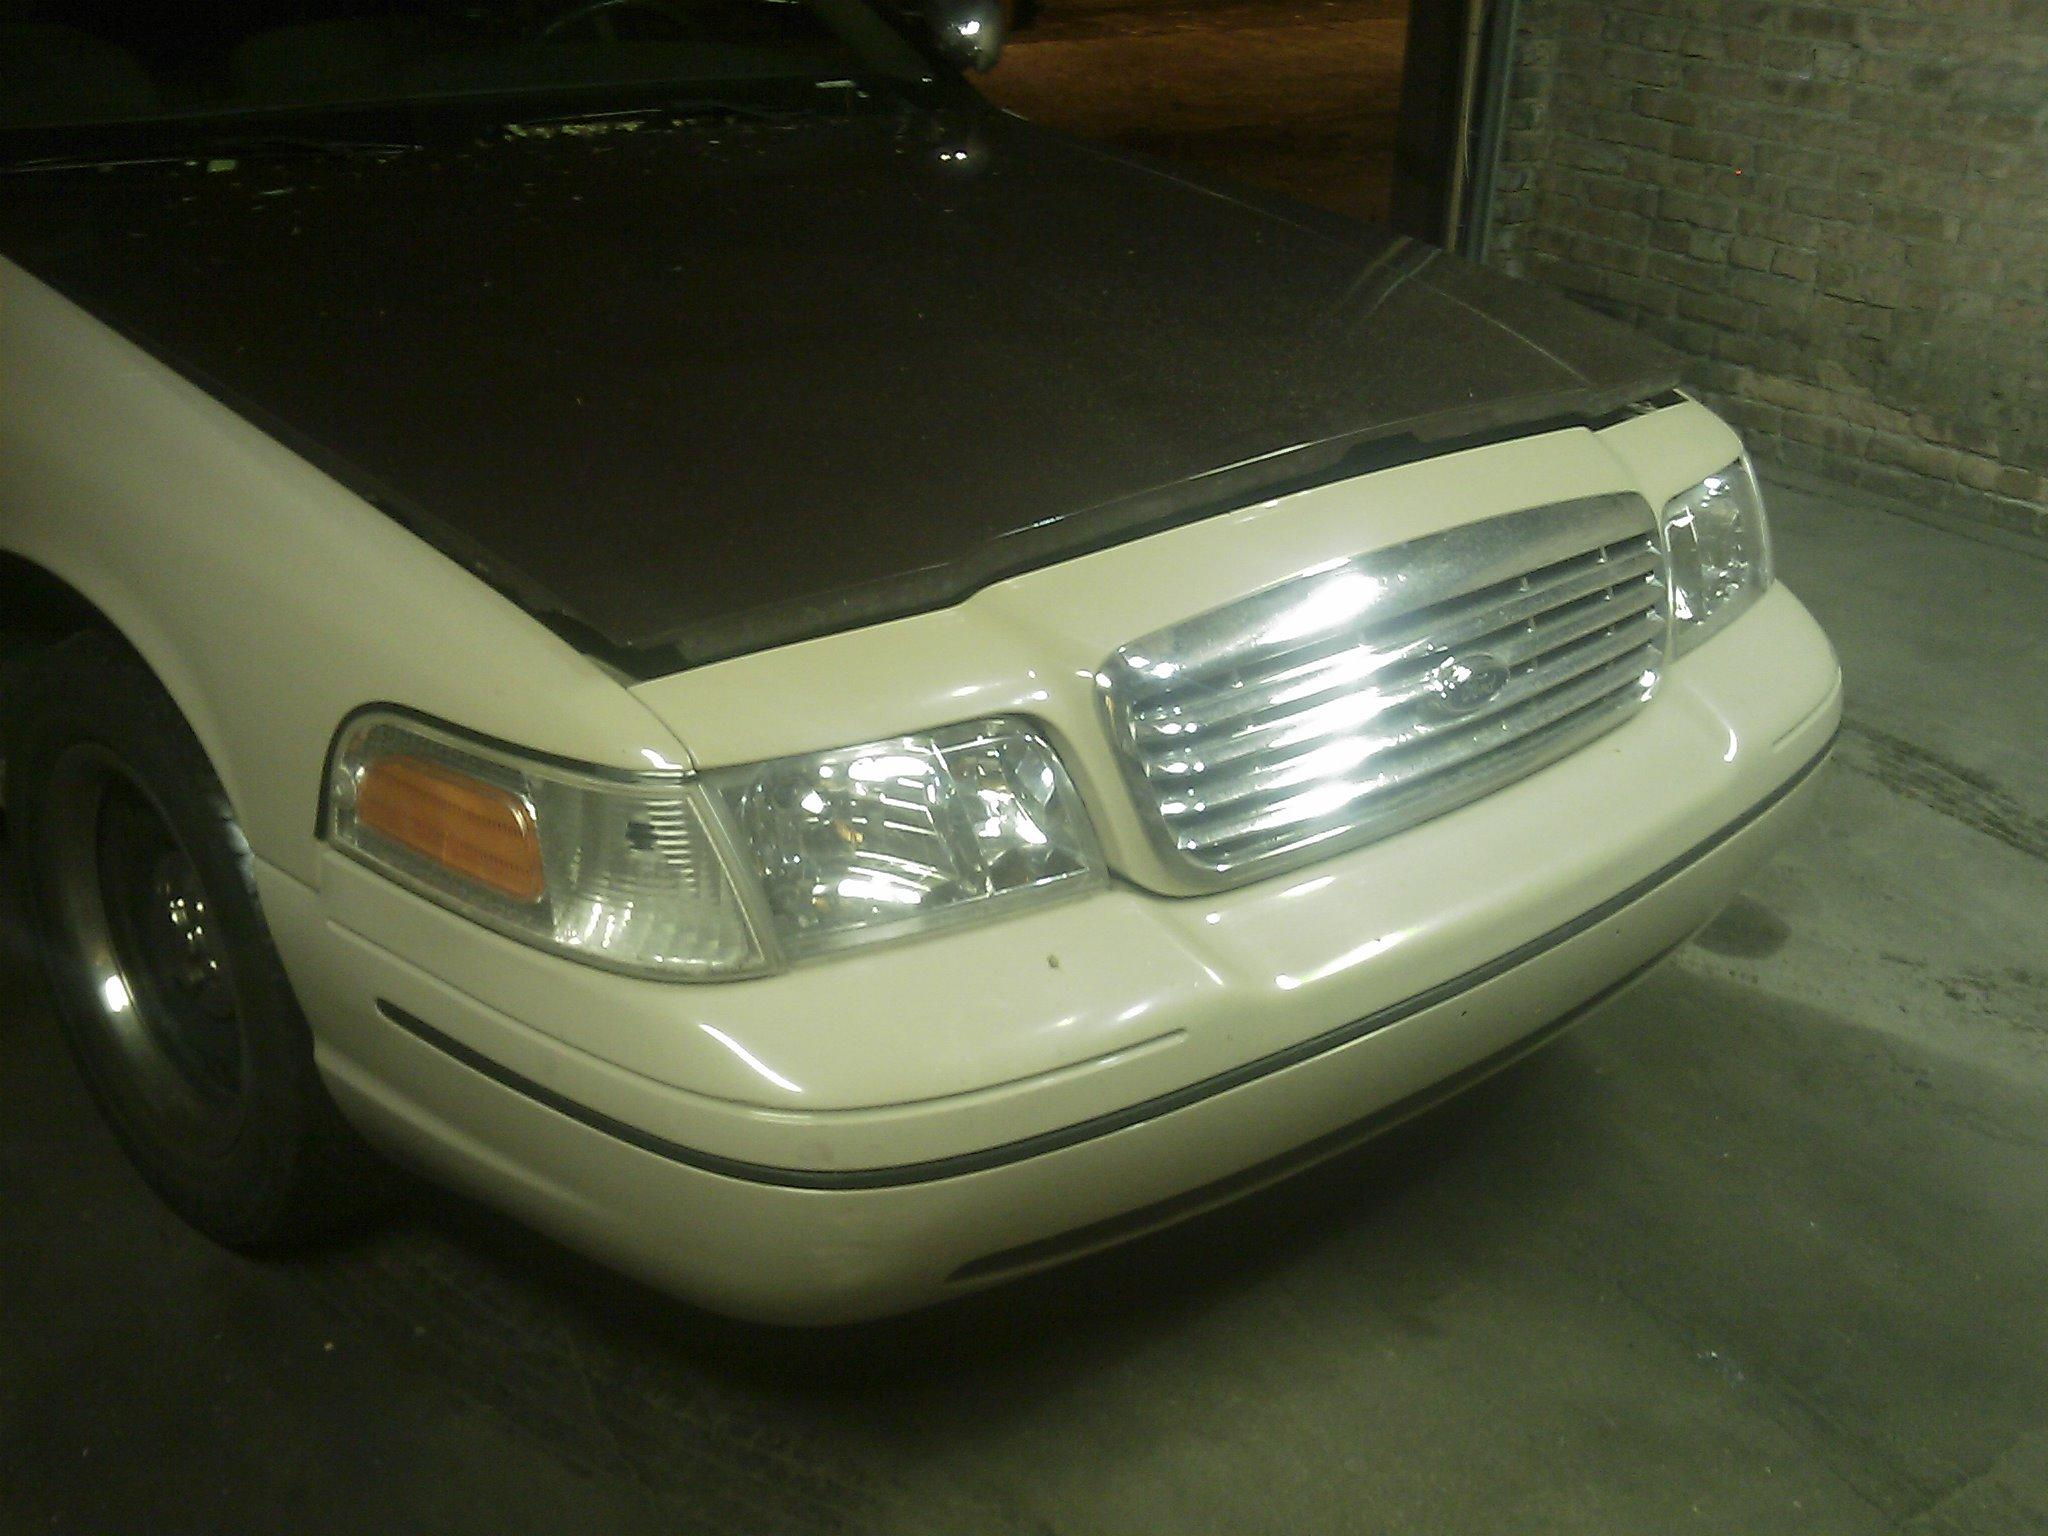 Djchicago's 2002 Ford Crown Victoria